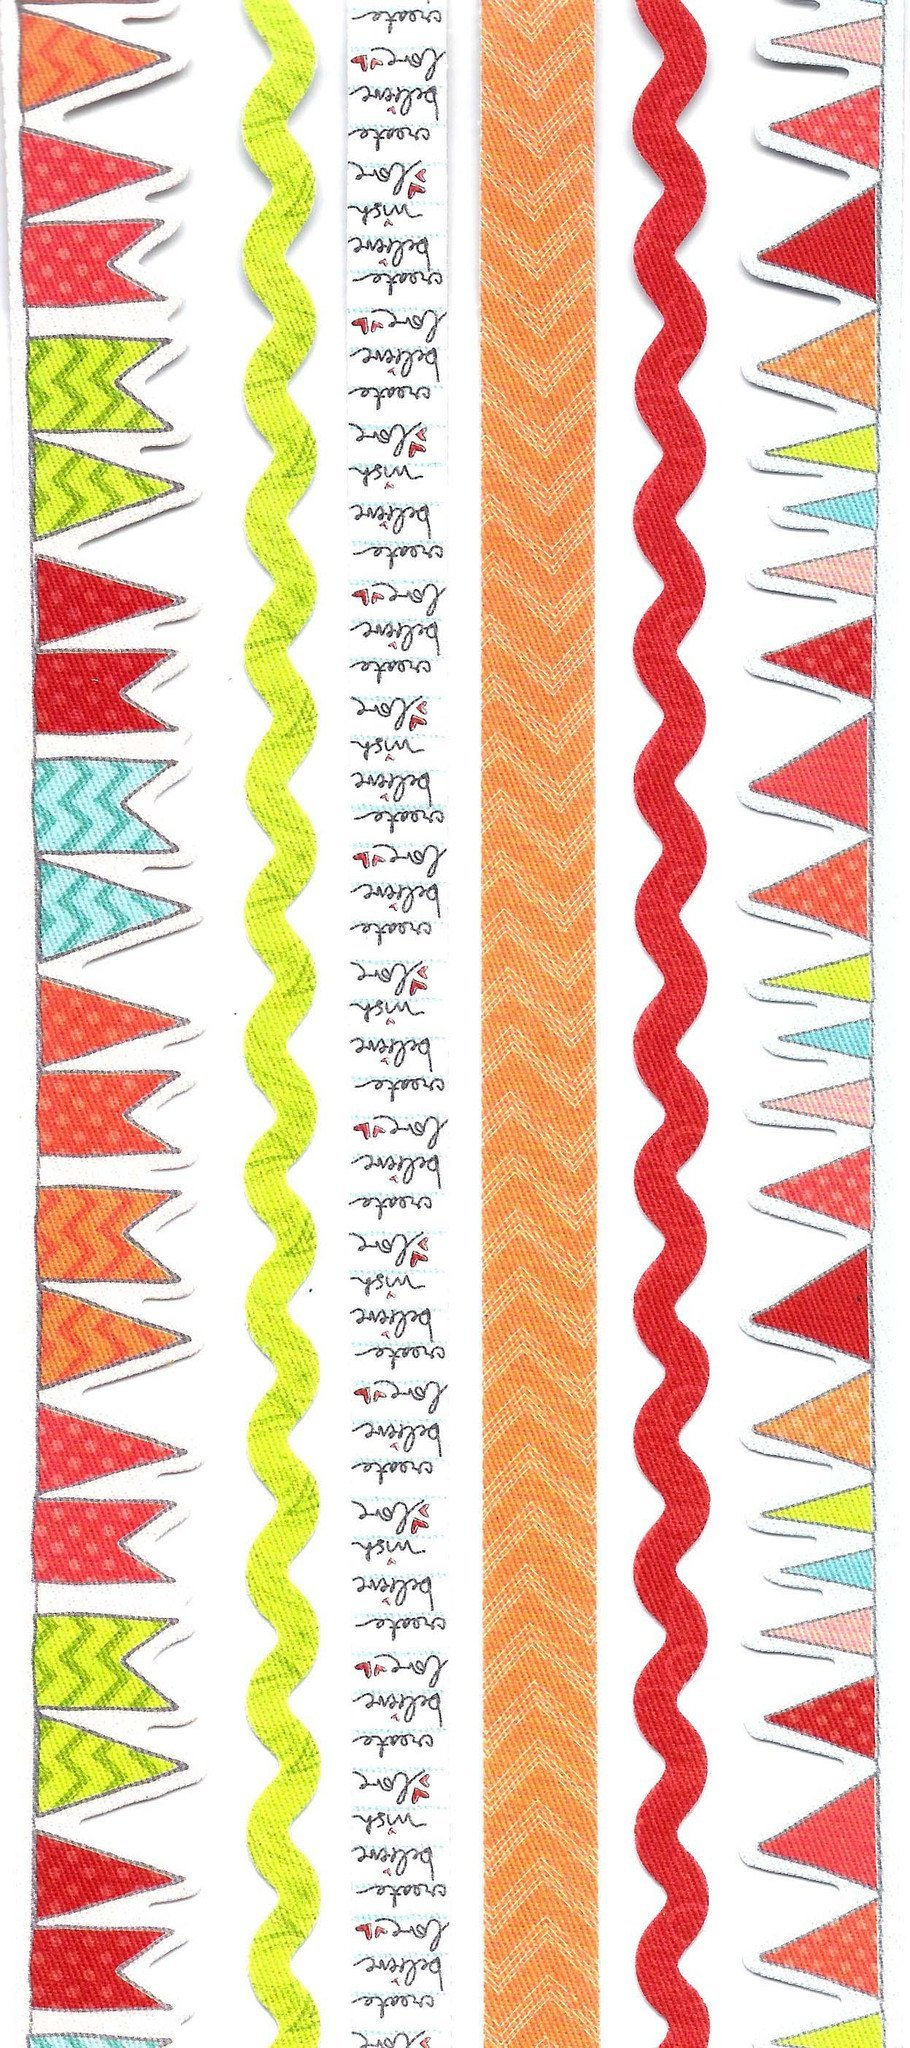 Garland Border Fabric Trim Stickers for Scrapbooking and Decorating in Shades of Red | DOTOLY